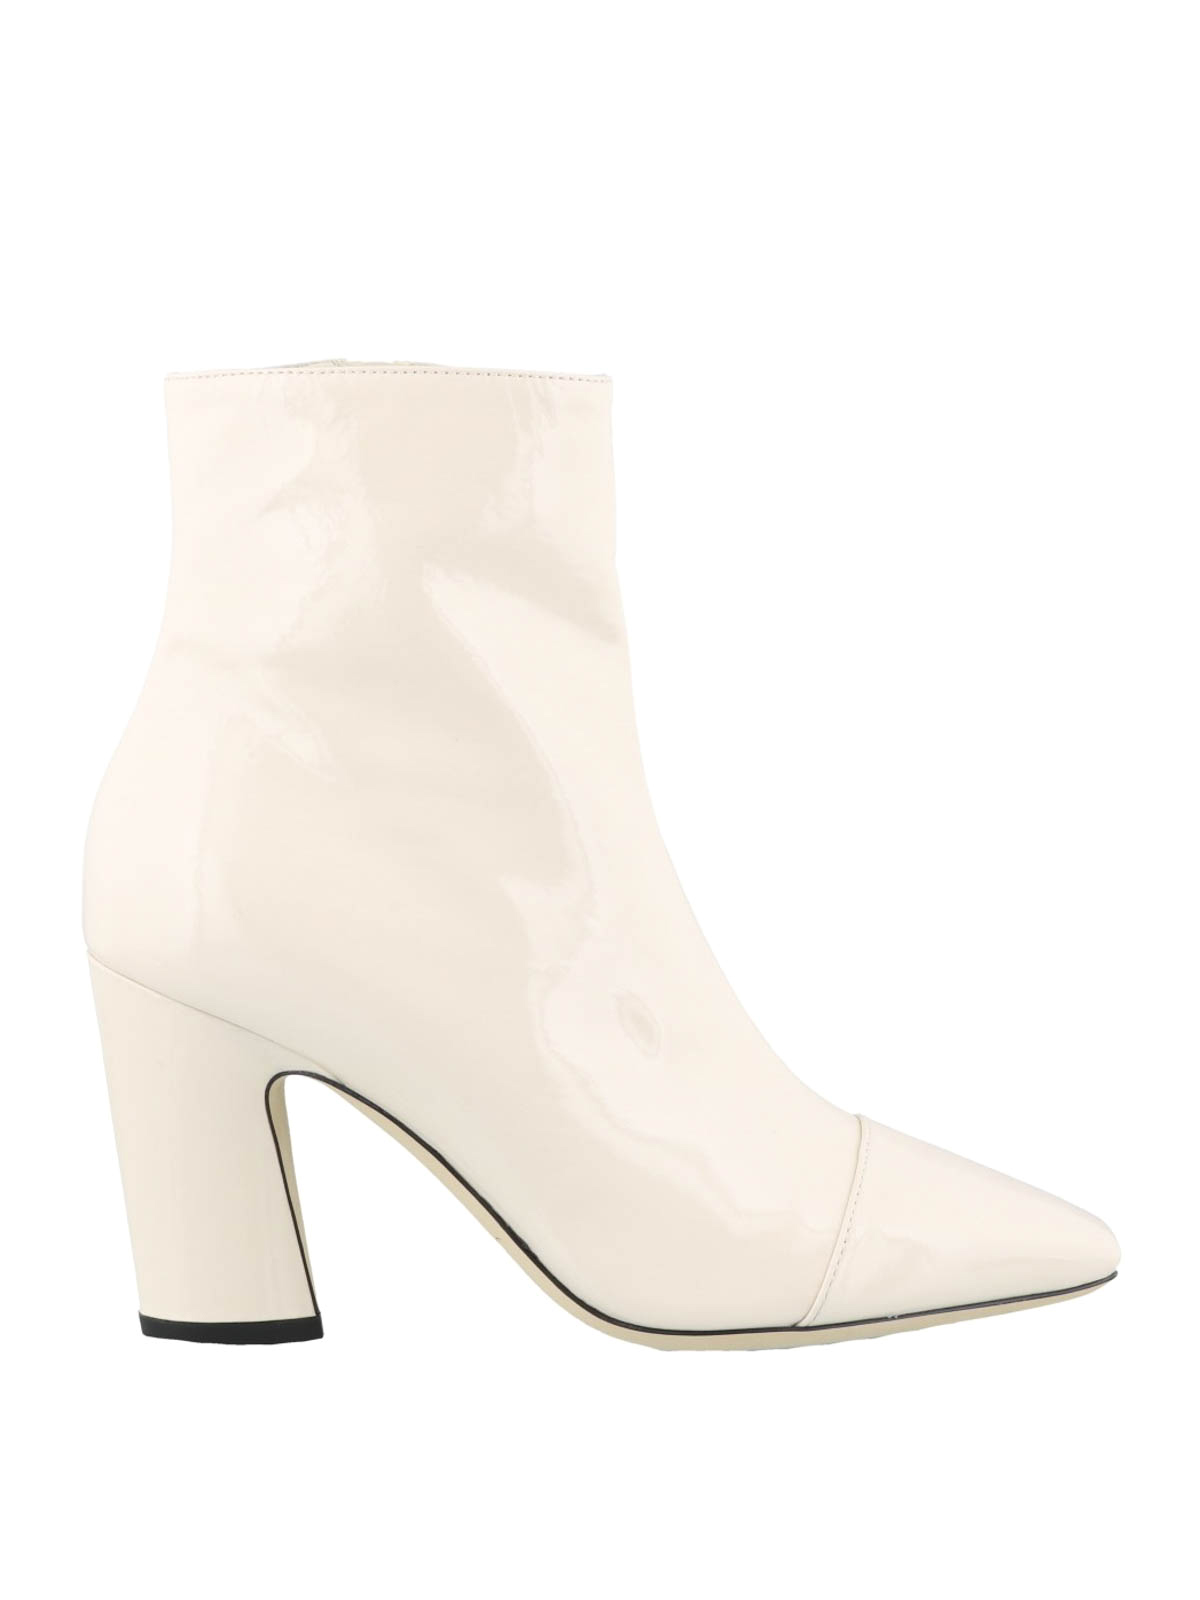 patent leather booties - ankle boots